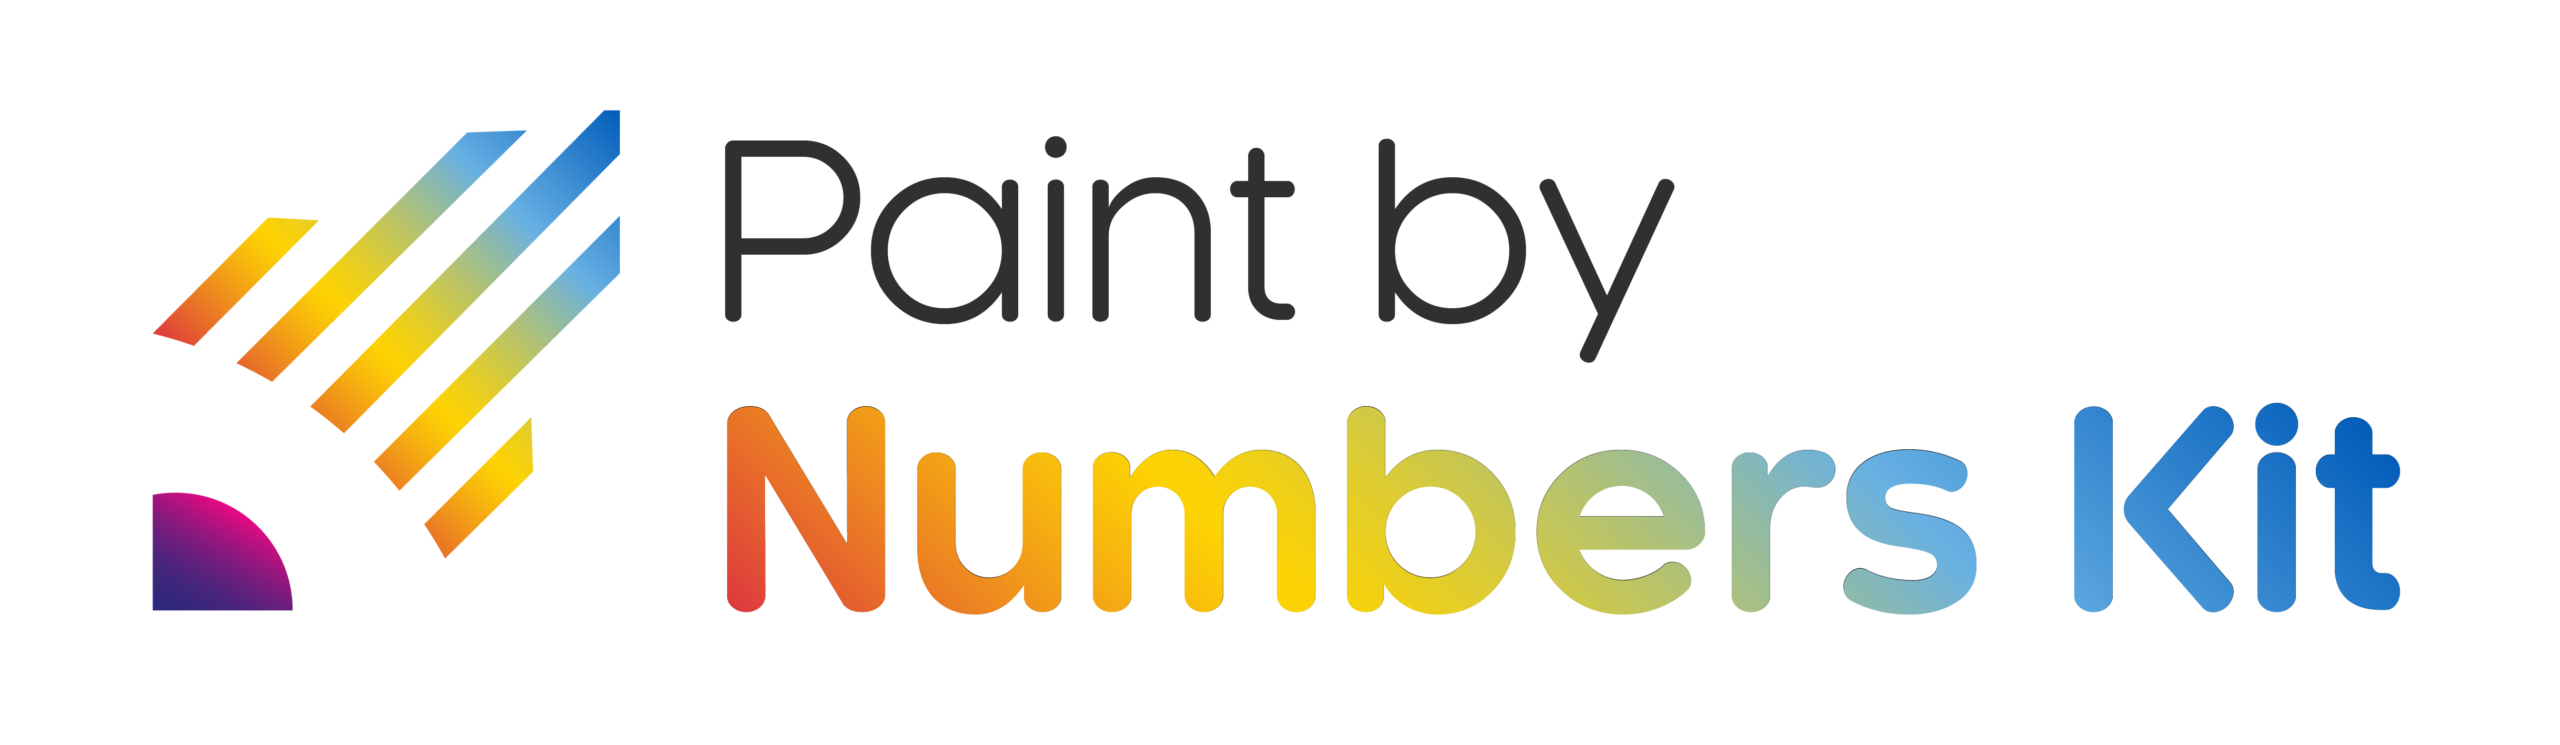 Logo paint by numbers kit shop